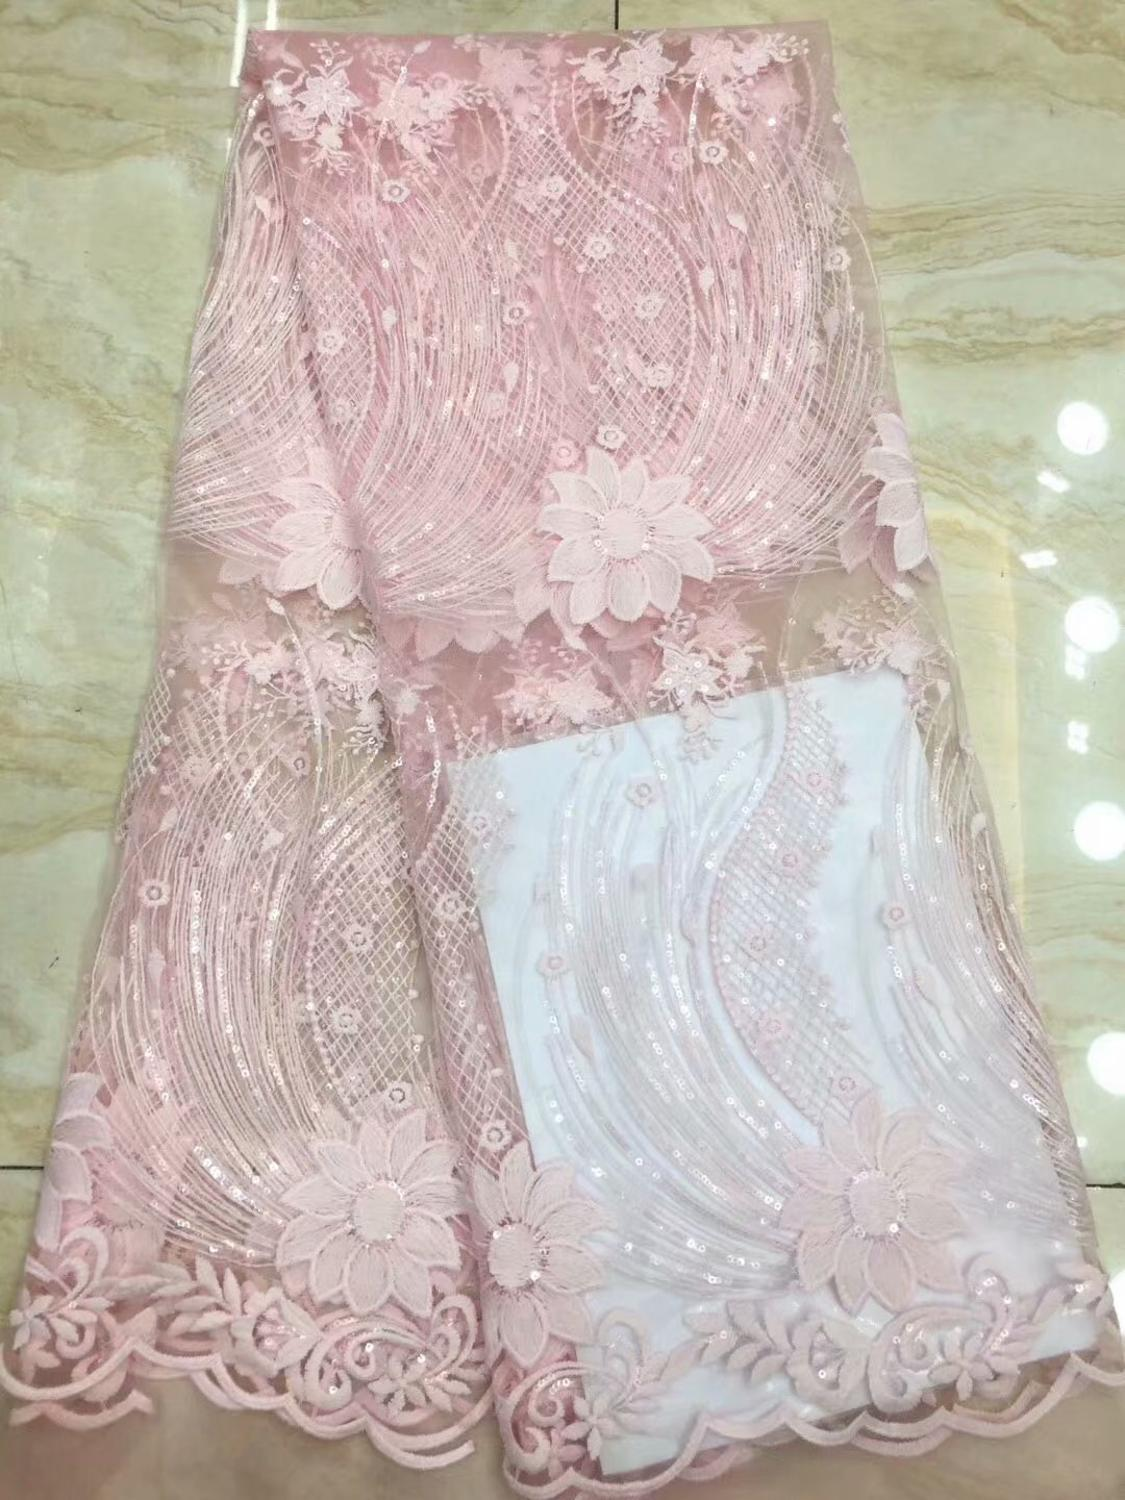 2019 Latest Popular Designs pink gold sequins Fabric 5 Yards African Lace Fabric High Quality indian